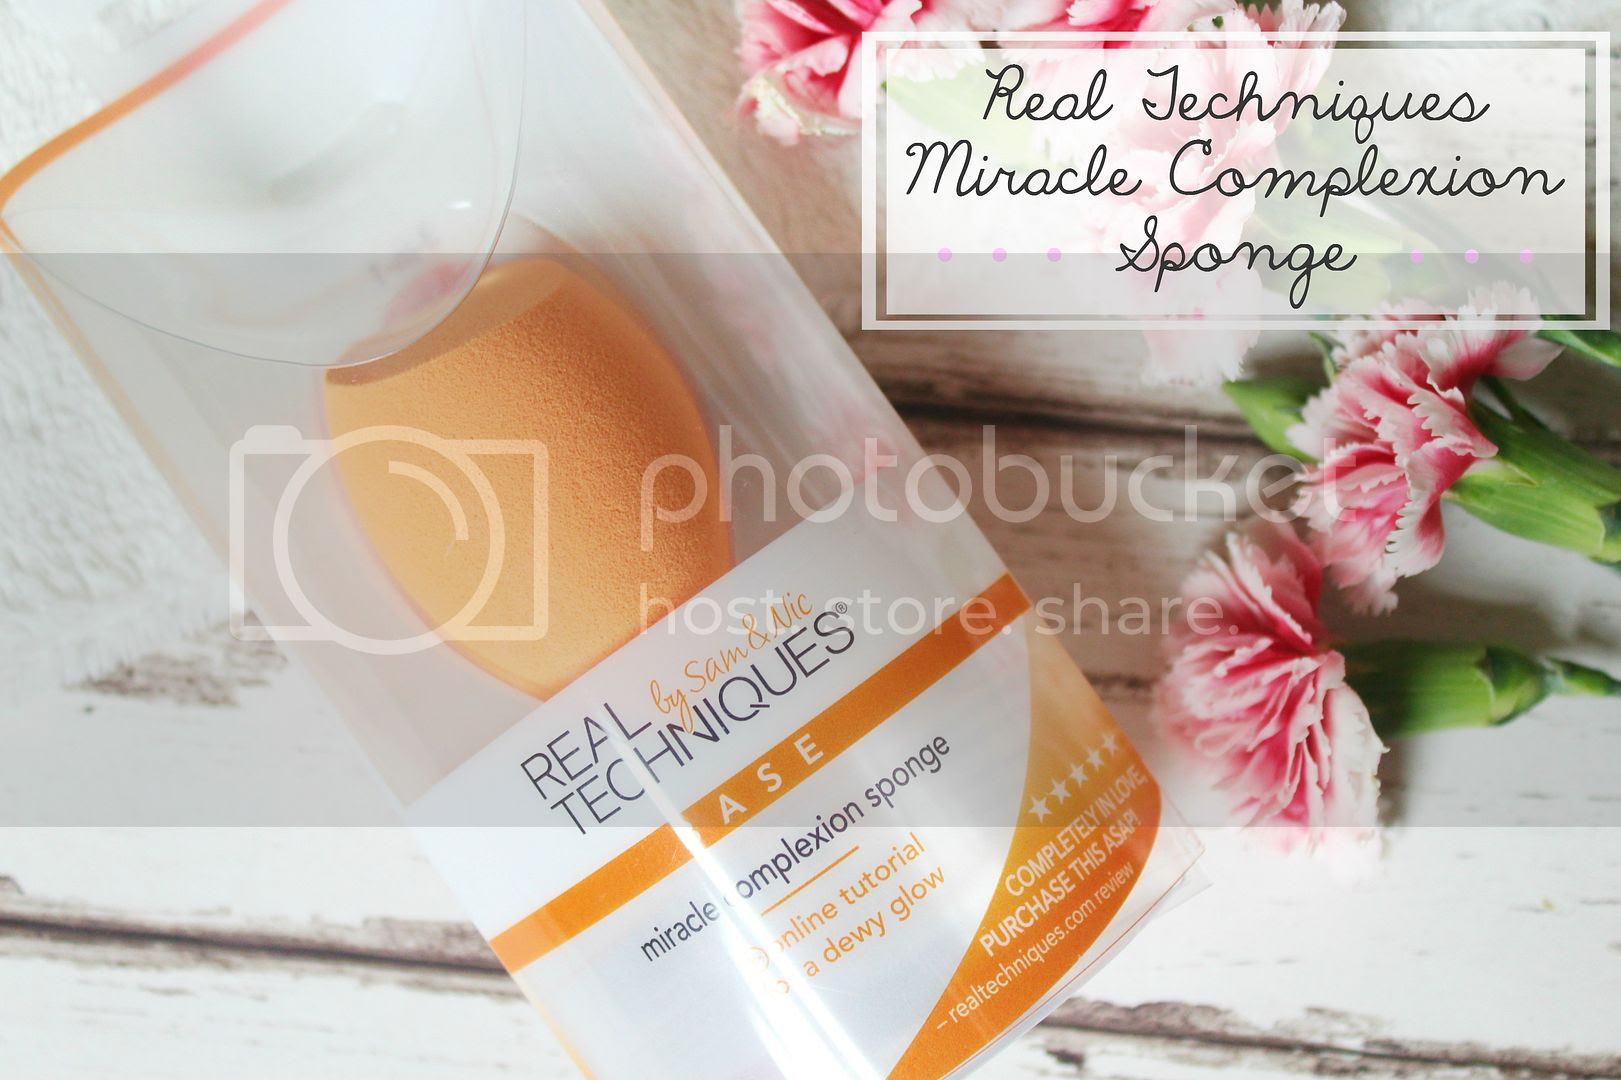 Real Techniques Miracle Complexion Sponge Foundation Base Review Close Up Belle-Amie UK Beauty Fashion Lifestyle Blog